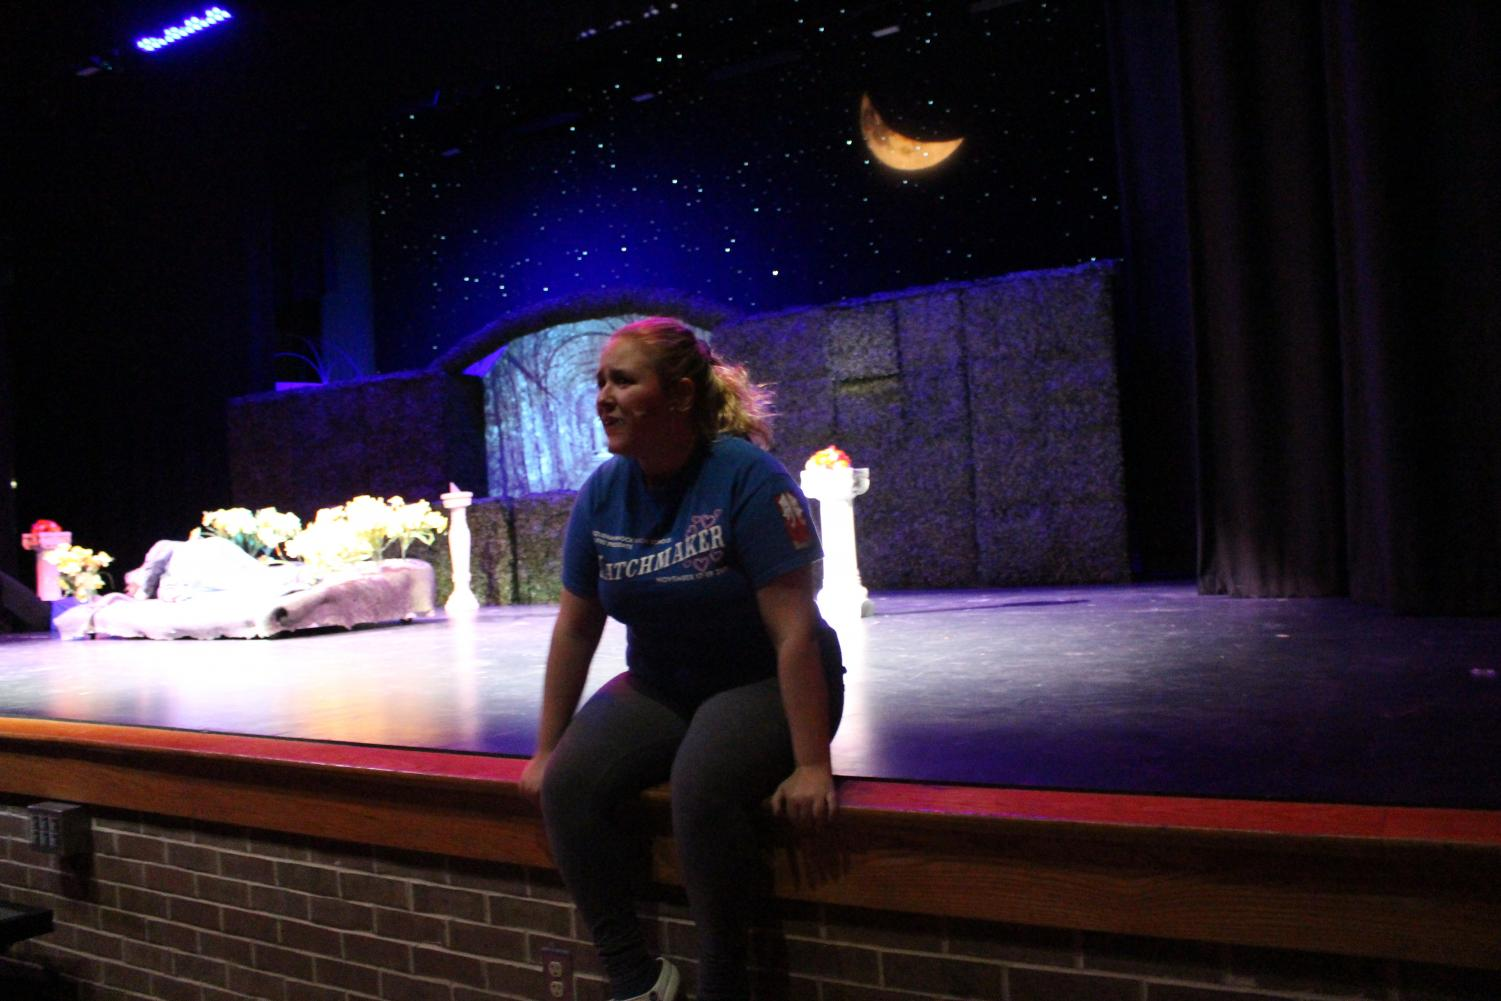 Pflieger+delivers+a+monologue+as+her+character+Helena.+The+cast+were+challenged+in+memorizing+their+lines%2C+but+they+were+eventually+successful.+Pflieger+said%2C+%22Shakespeare%2C+he%E2%80%99s+a+little+wild%3B+he+loves+description...+which+has+led+to+some+trouble+memorizing+lines+because+now+we+have+to+have+the+rhyming+into+effect+too%2C+and+it%E2%80%99s+just+basically+crazy.+It%E2%80%99s+different+than+what+we%E2%80%99ve+done+before+in+terms+of+line+memorization.%22+Photo+by+Anna+Feild